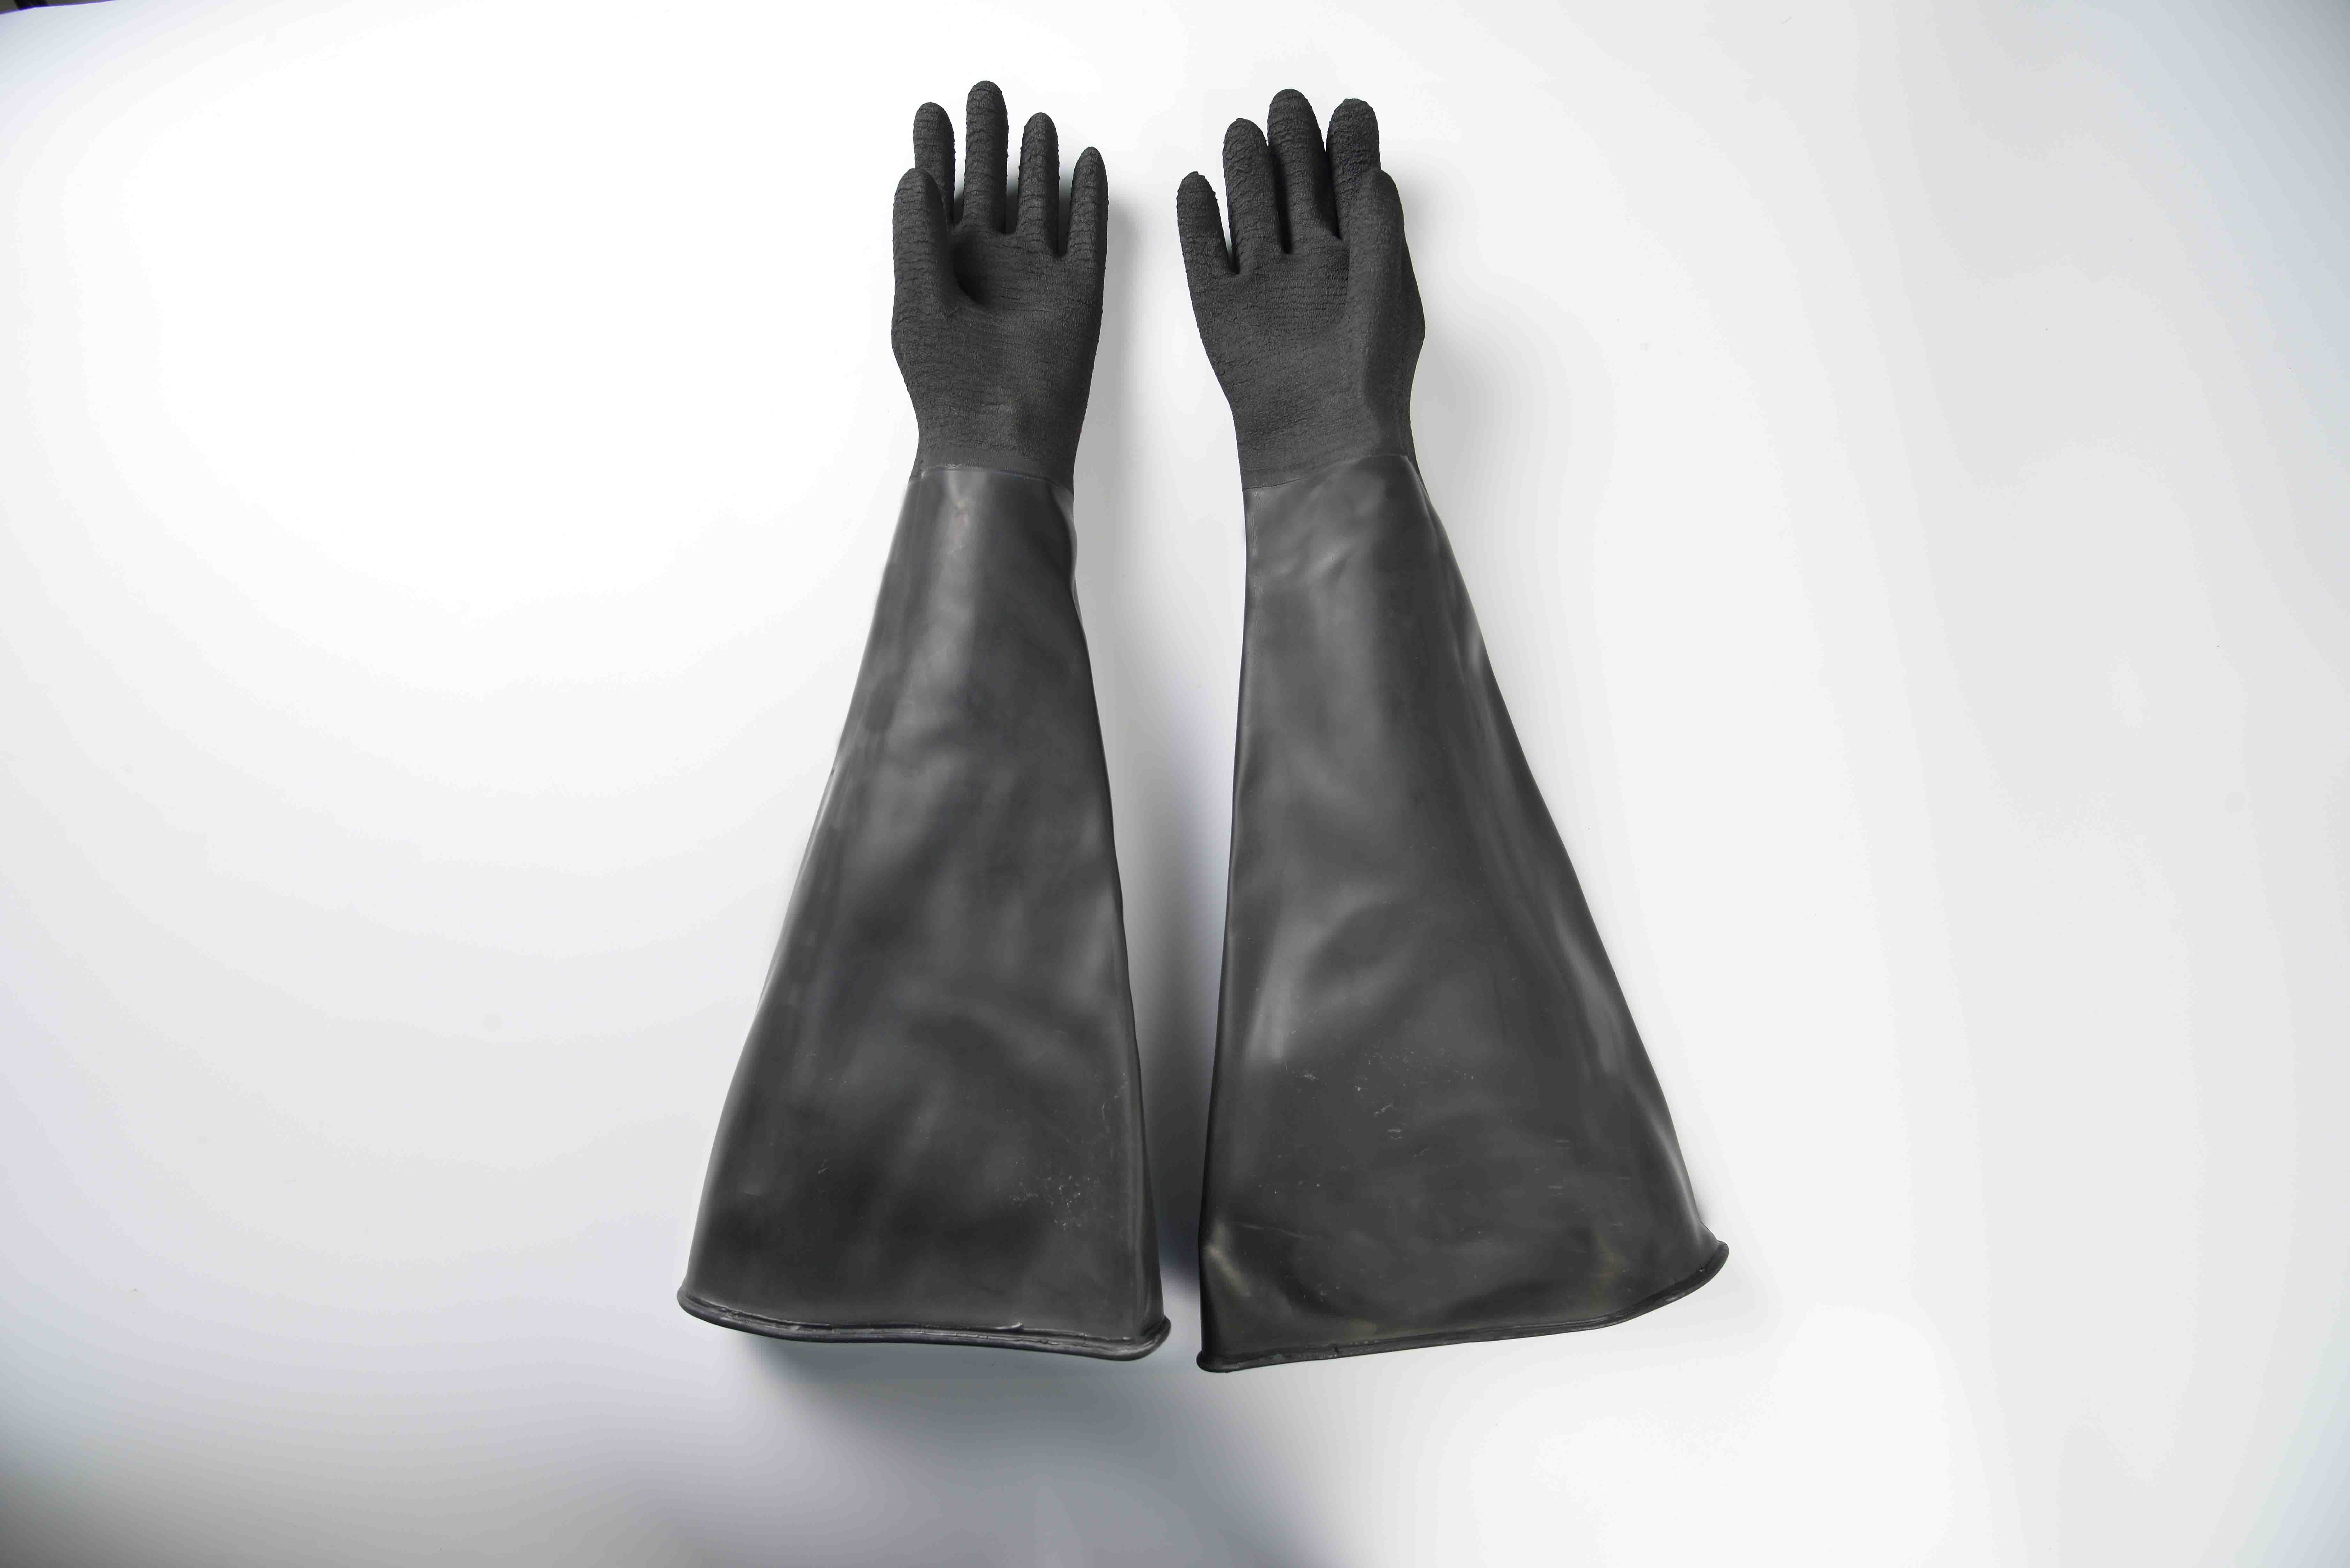 Hot-selling attractive price 26″ Industrial rubber glove-rough finish sale to Houston